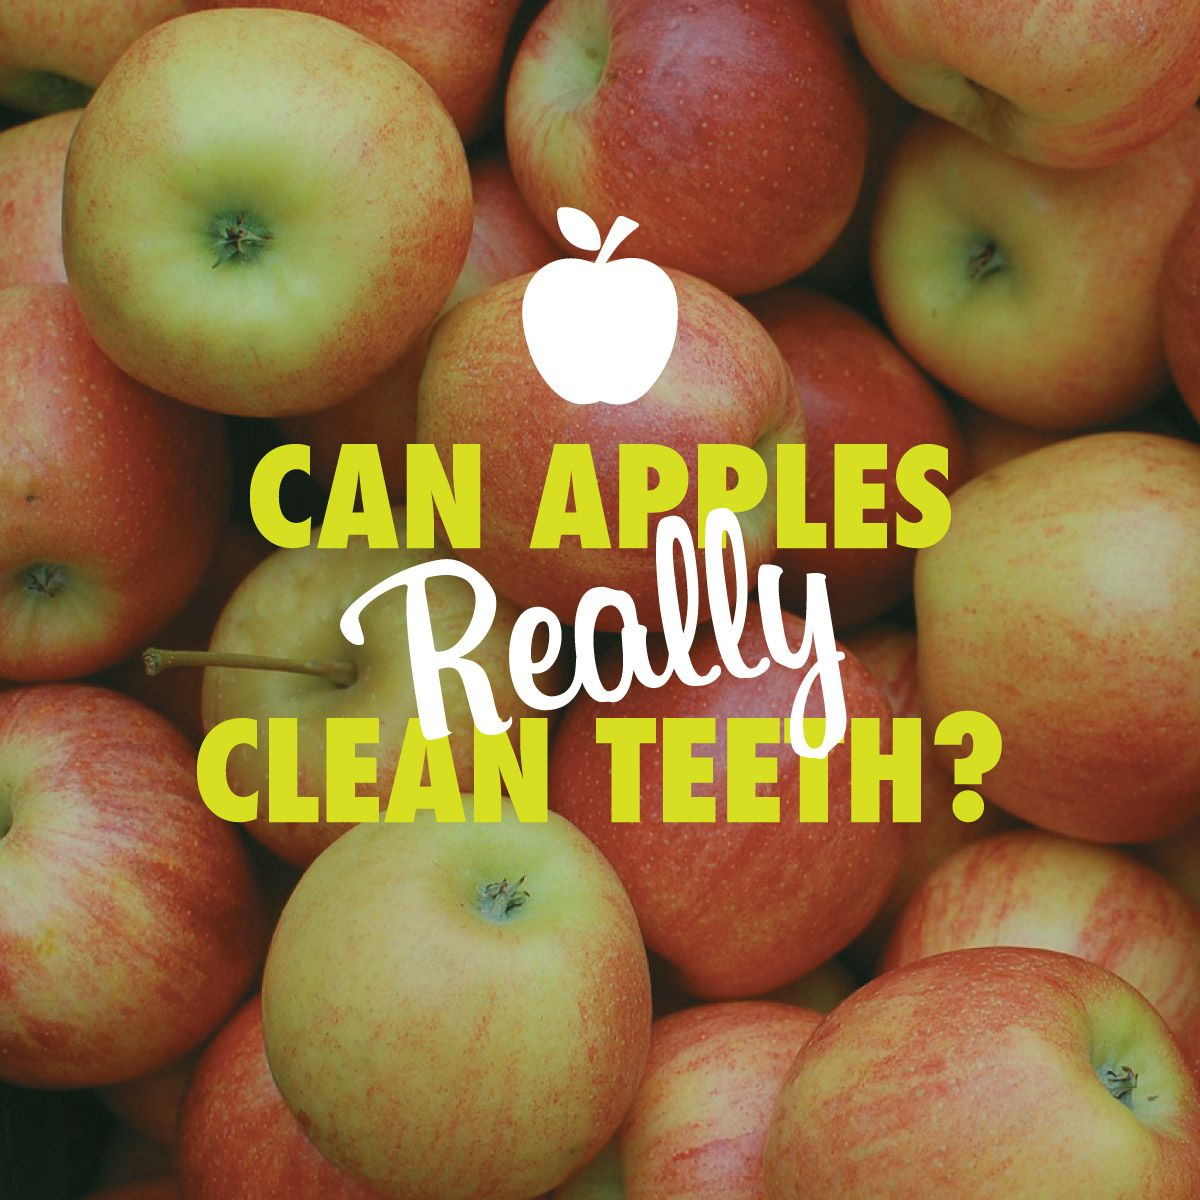 APPLE DAY is Oct. 21! Apples DO help clean teeth, just